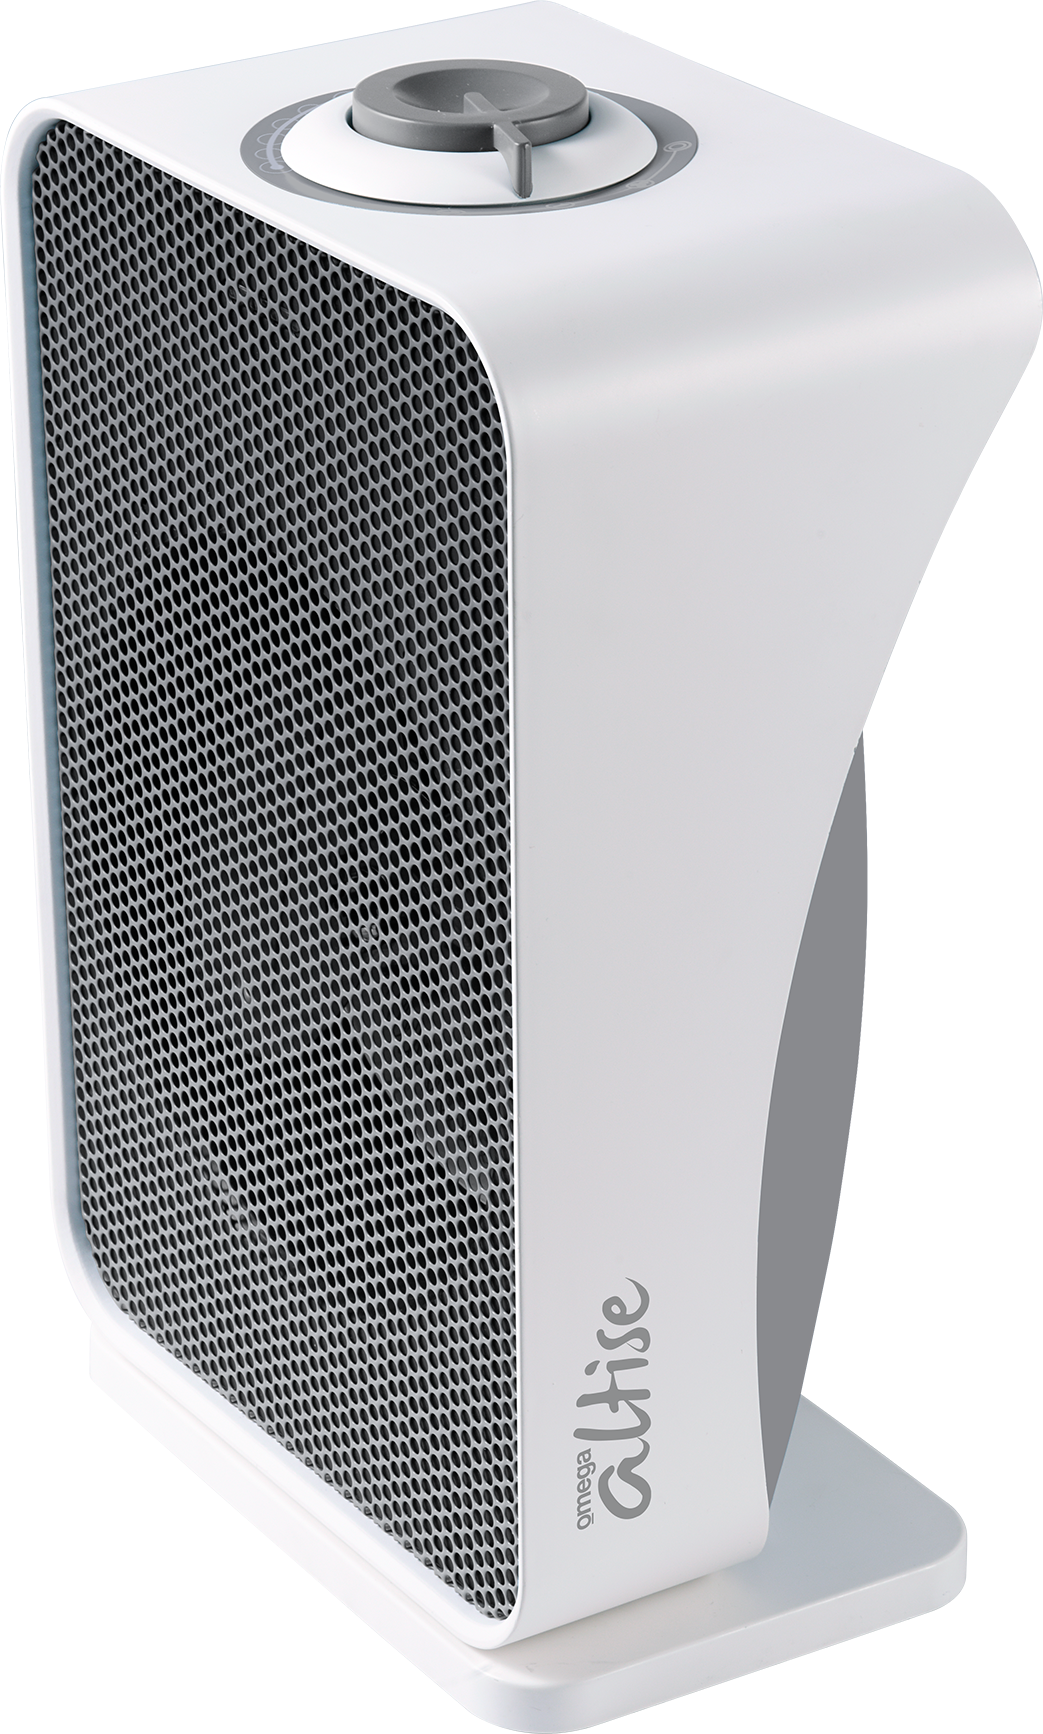 Omega Altise Product Portable Fan Heater - White 2000W  (OAFH2000W)